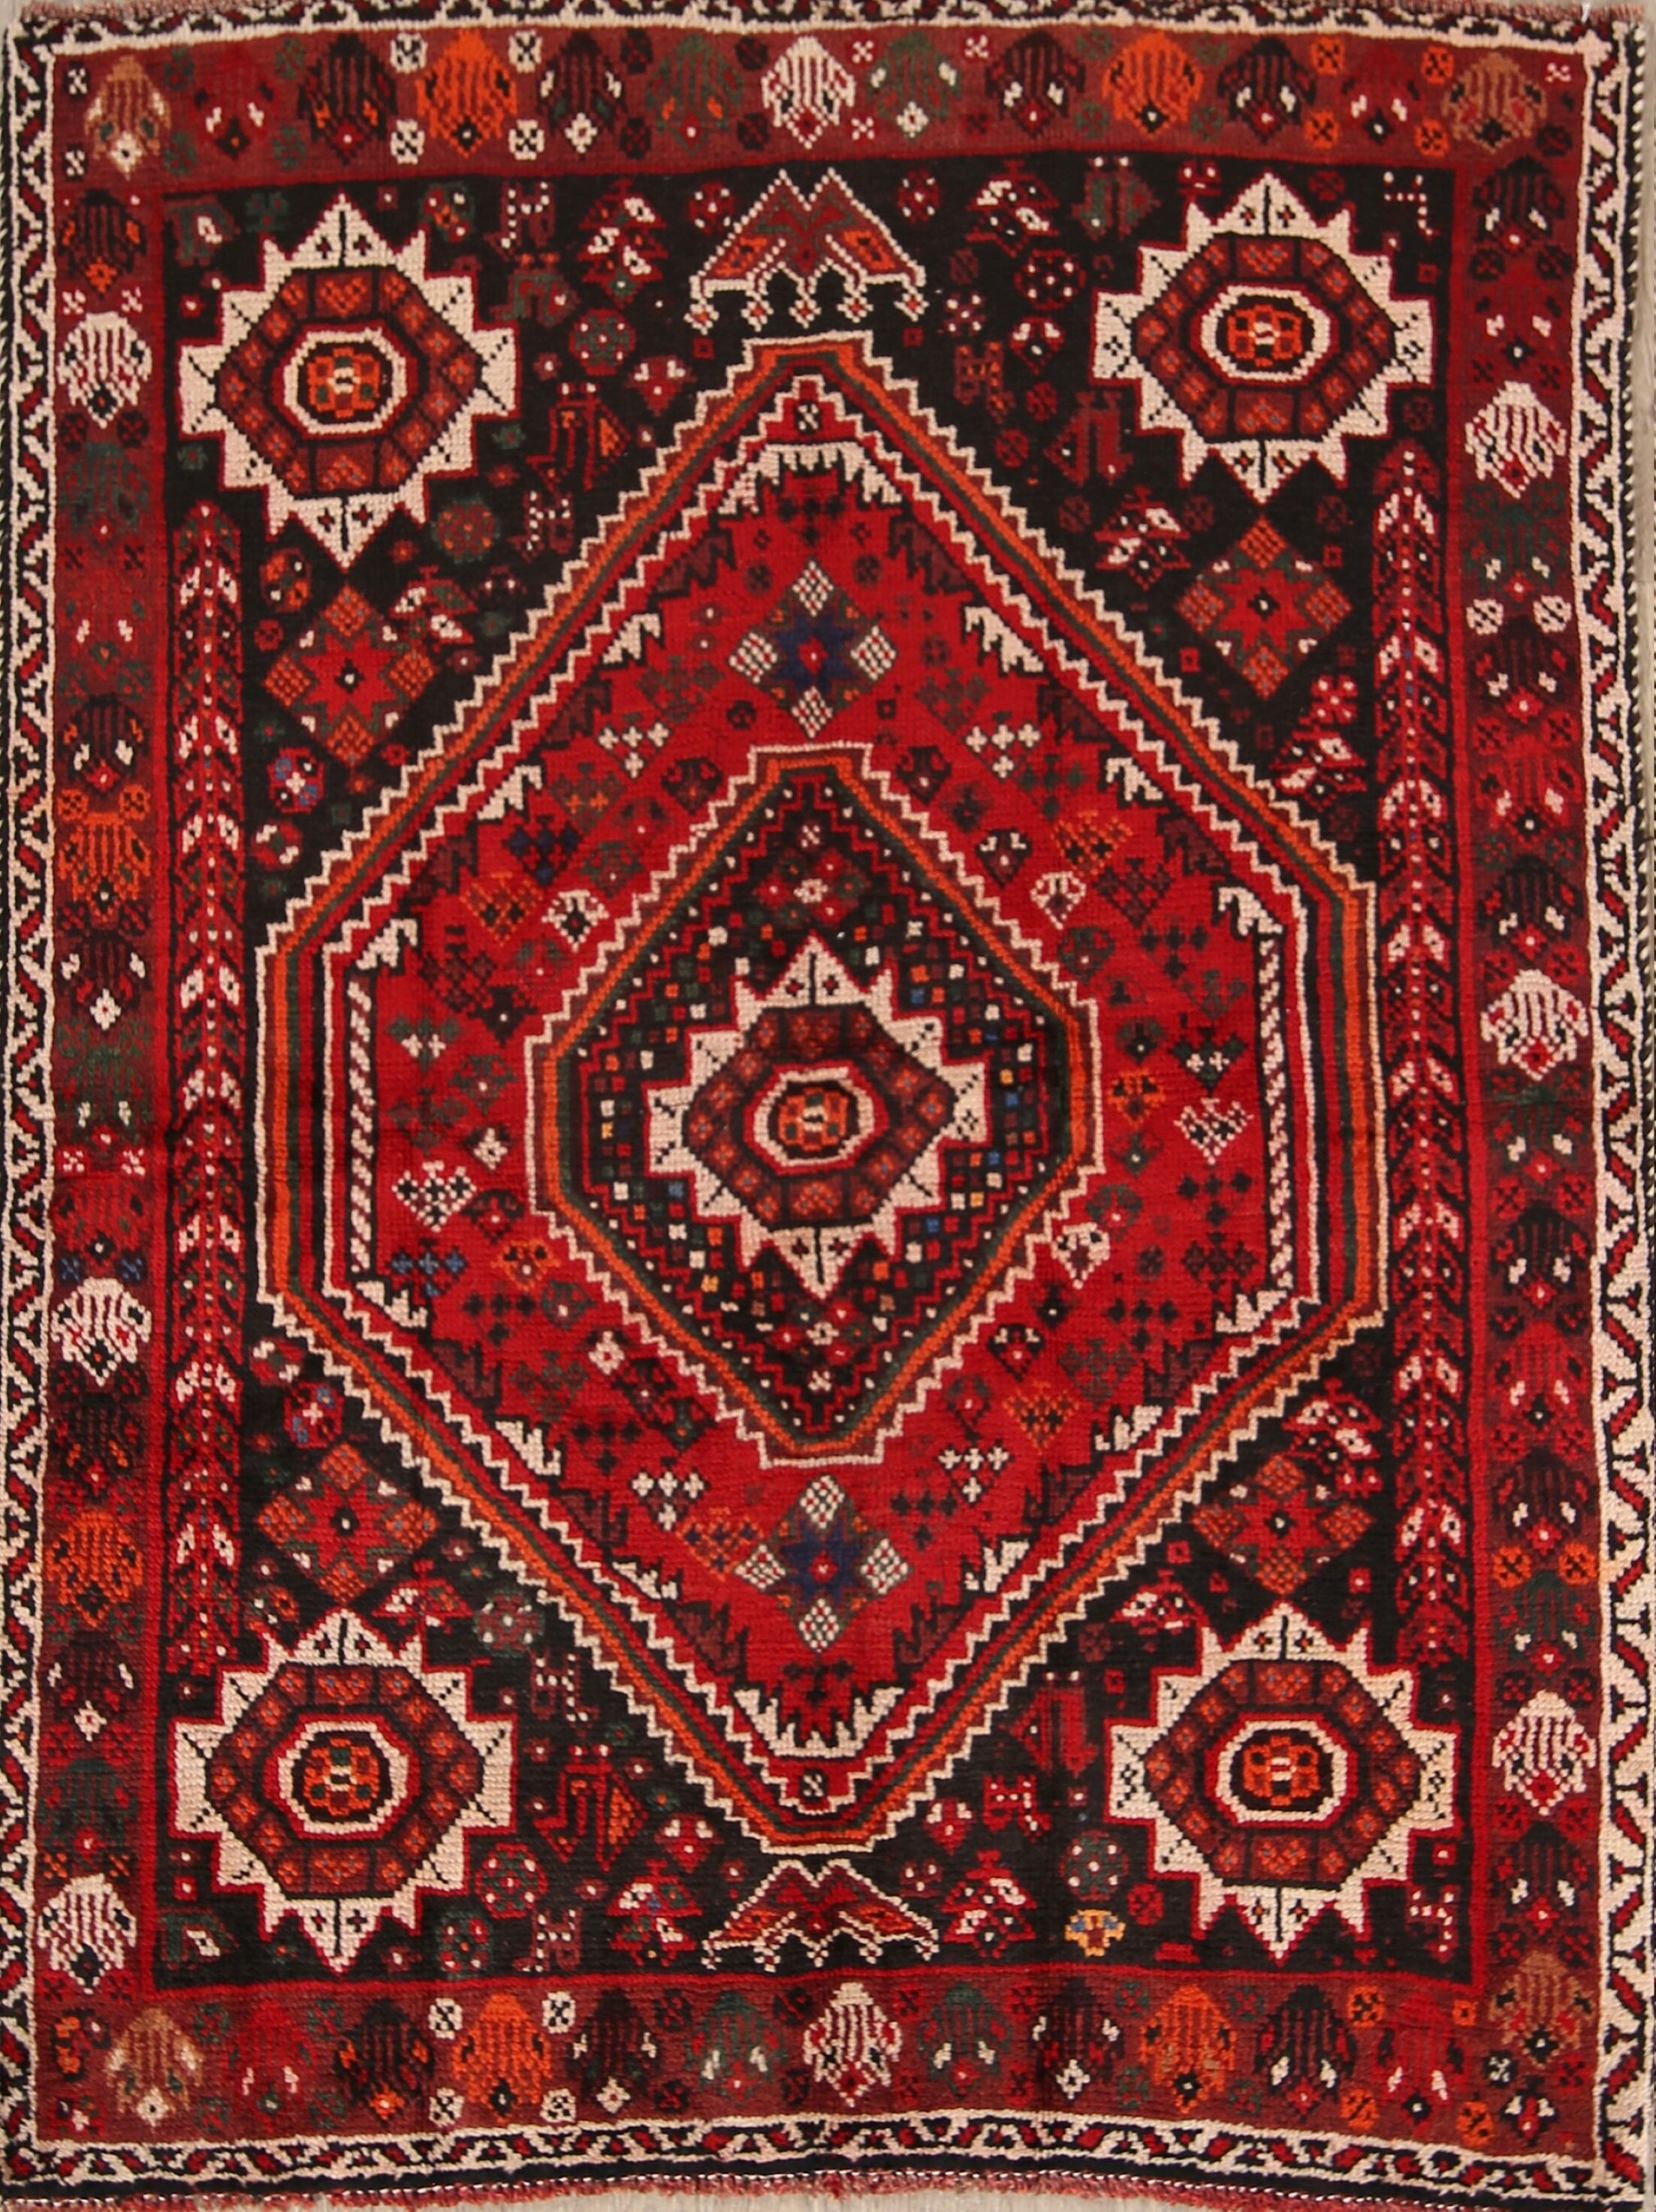 One-of-a-Kind Traditional Shiraz Persian Hand-Knotted 3'11